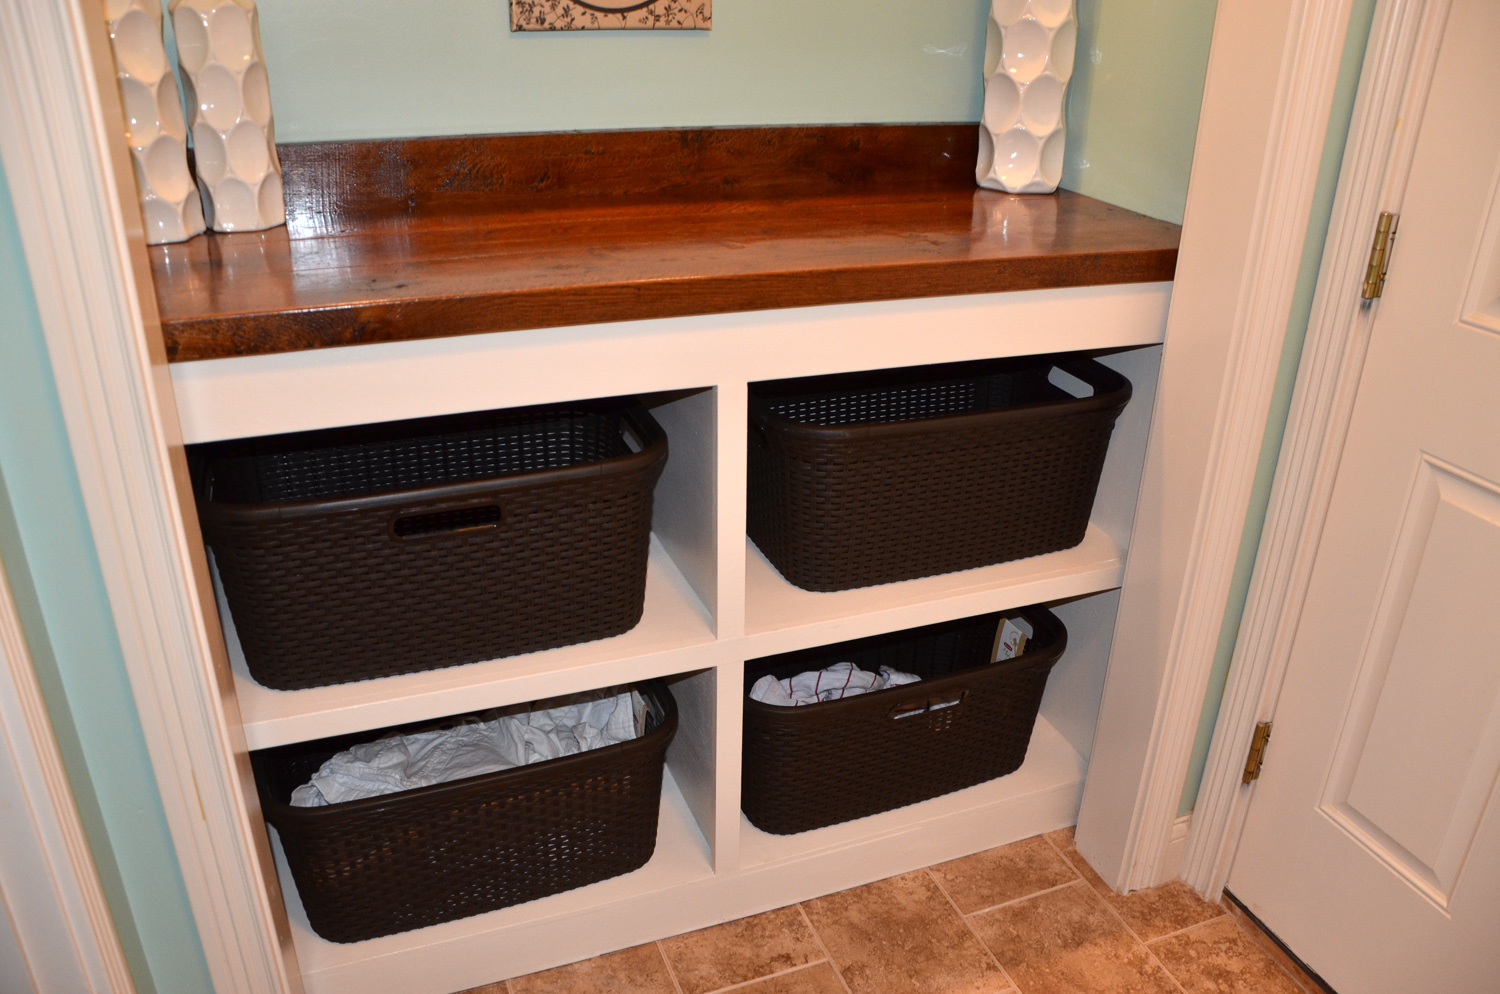 Laundry Room Countertop Material Laundry Room Closet Clothes Bin And Countertop Tutorial The